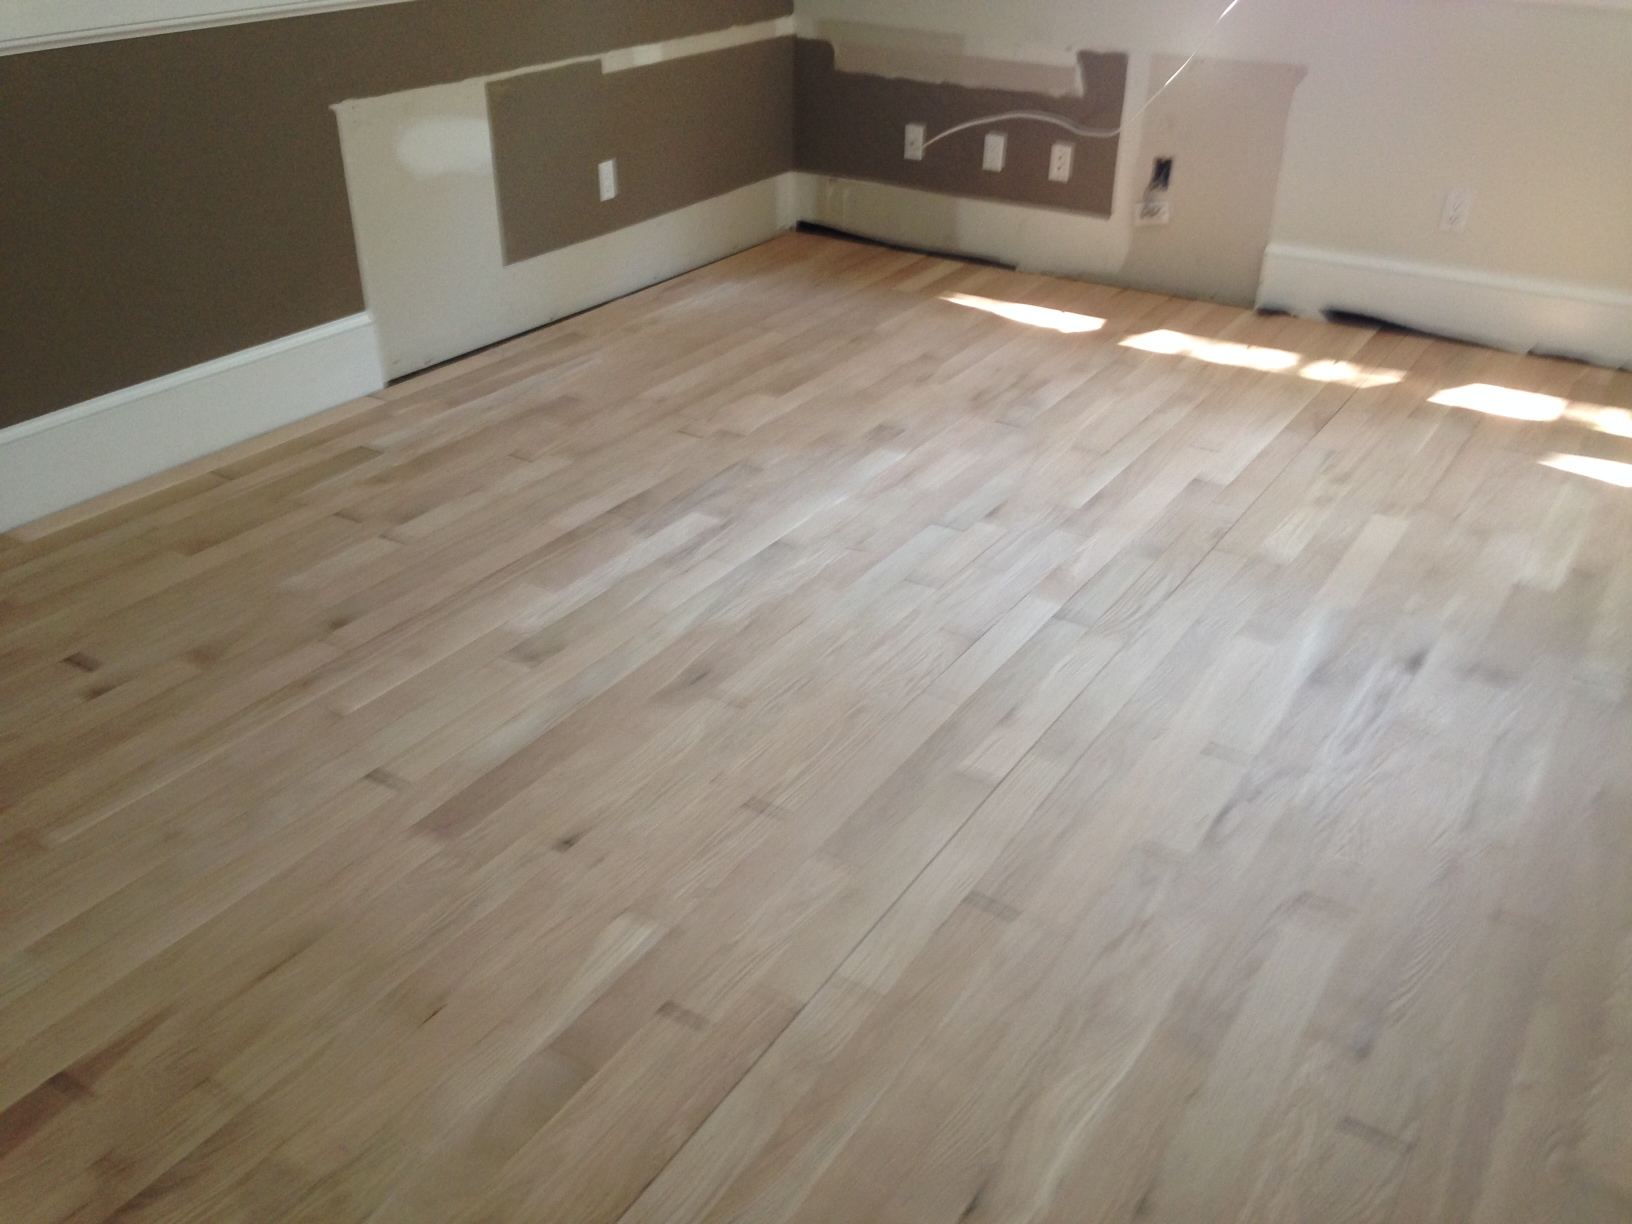 White Oak Flooring Installation In Amelia Island Plantation